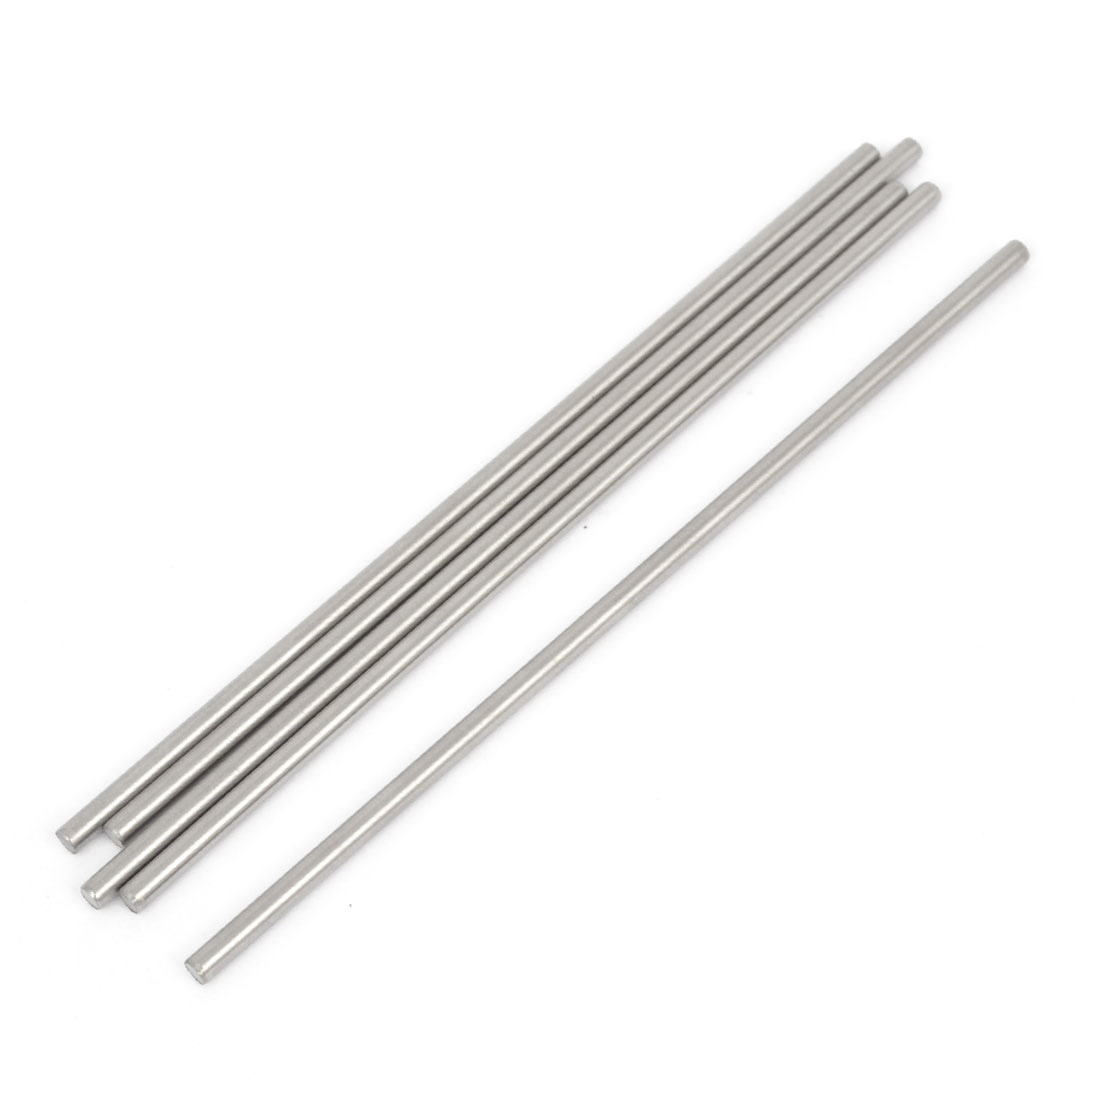 5 Pcs RC Airplane Model Part Stainless Steel Round Rods Axles Bars 3mm x 120mm